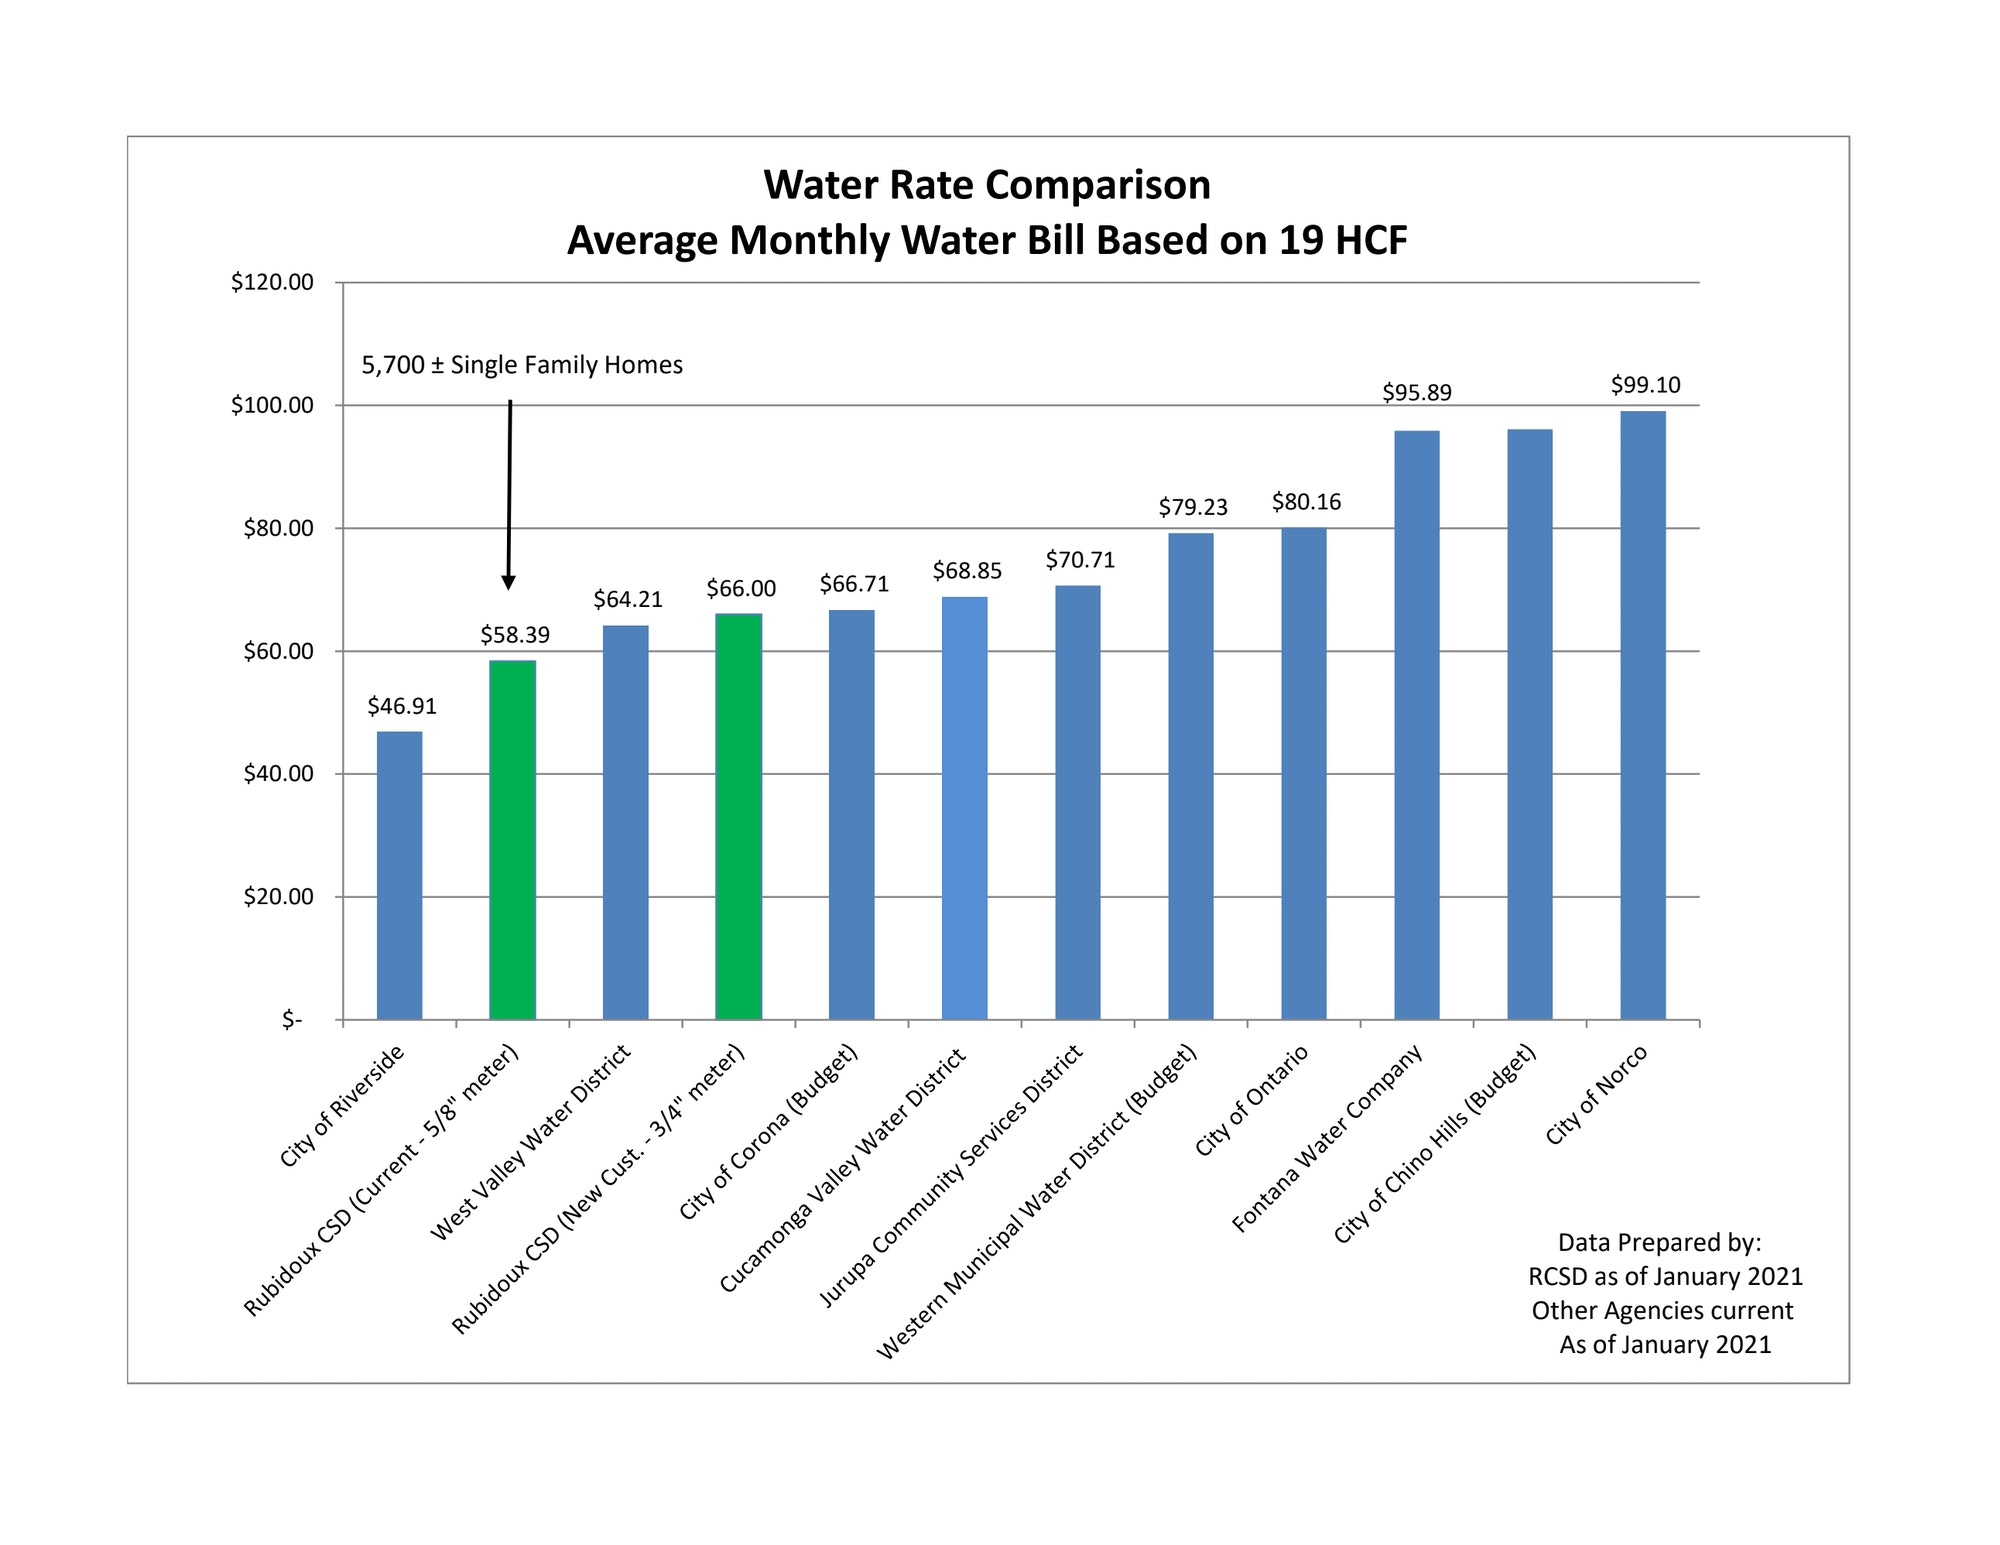 Average Monthly Water Bill Based on 19 HCF. 1 HCF equals 748 gallons